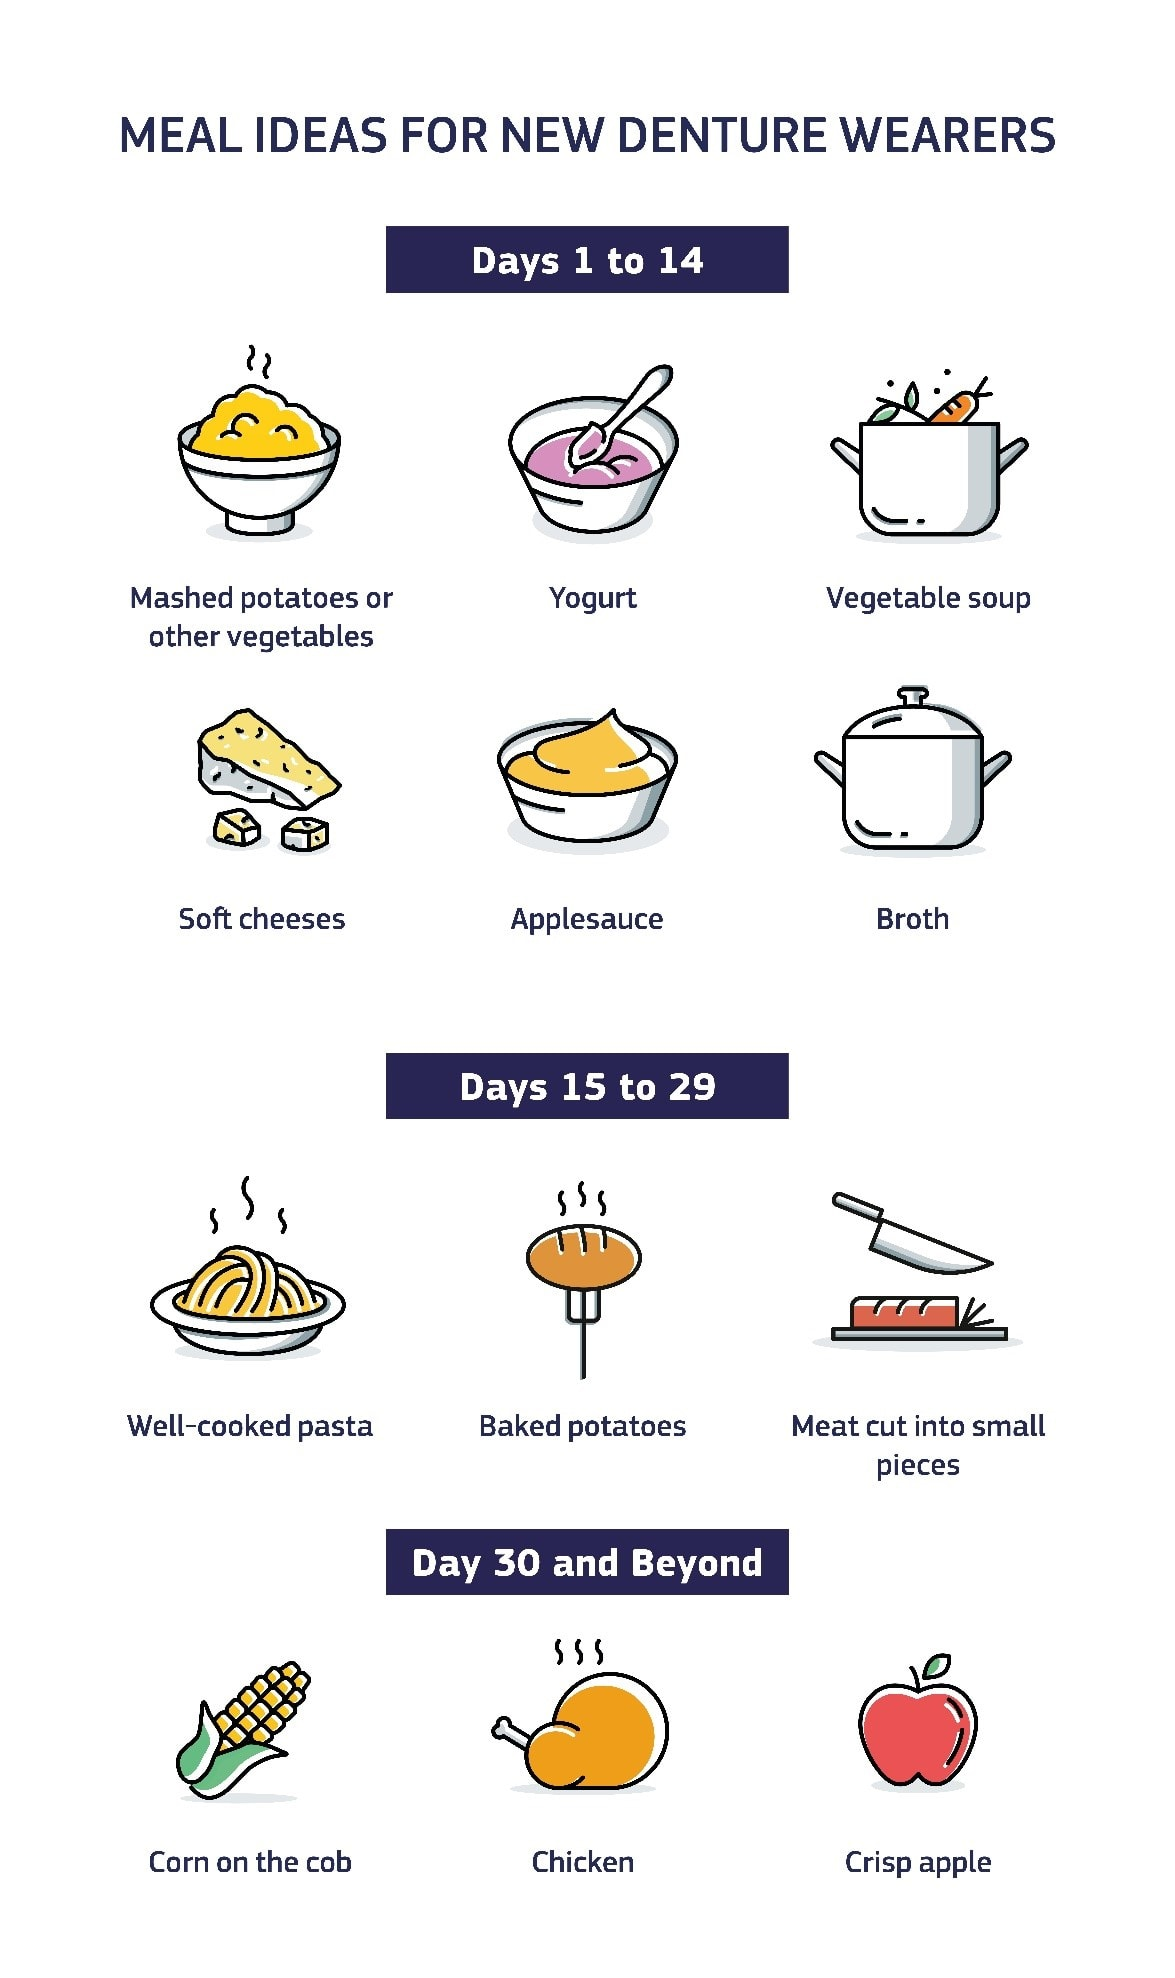 Infographic showing meal ideas for new denture wearers. Days 1 to 13: Mashed potatoes or other vegetables. Yogurt. Vegetable soup. Soft cheeses. Applesauce. Broth. Days 15 to 29: Well-cooked pasta. Baked potatoes. Meat cut into small pieces. Day 30 and beyond: Corn on the cob. Chicken. Crisp apple.